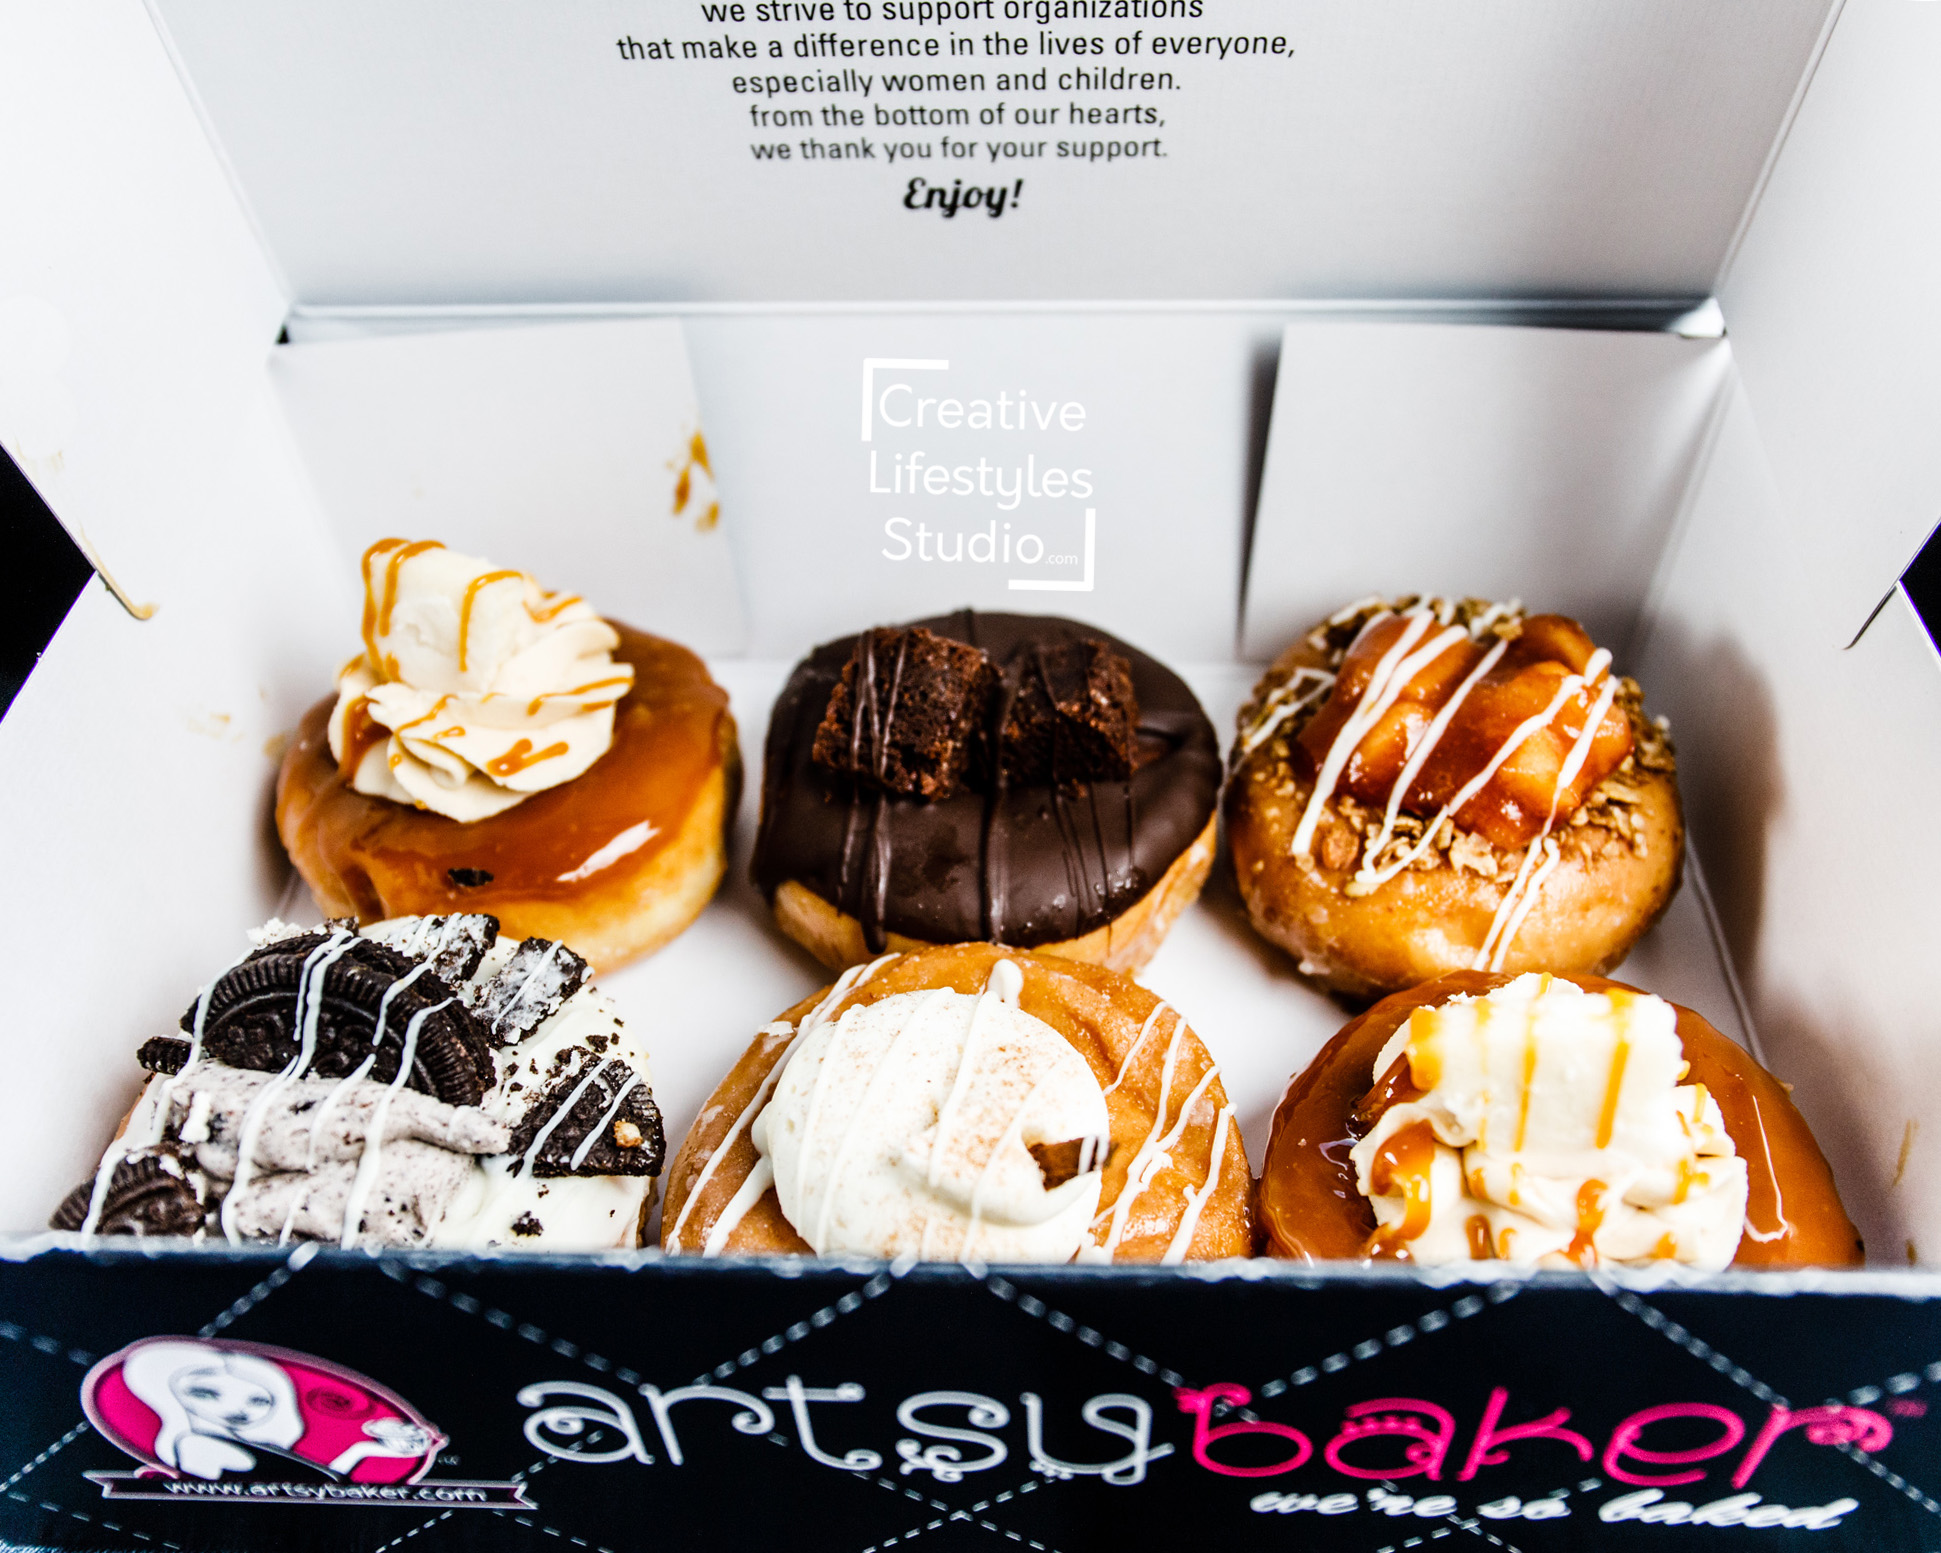 decked out donuts-105.jpg